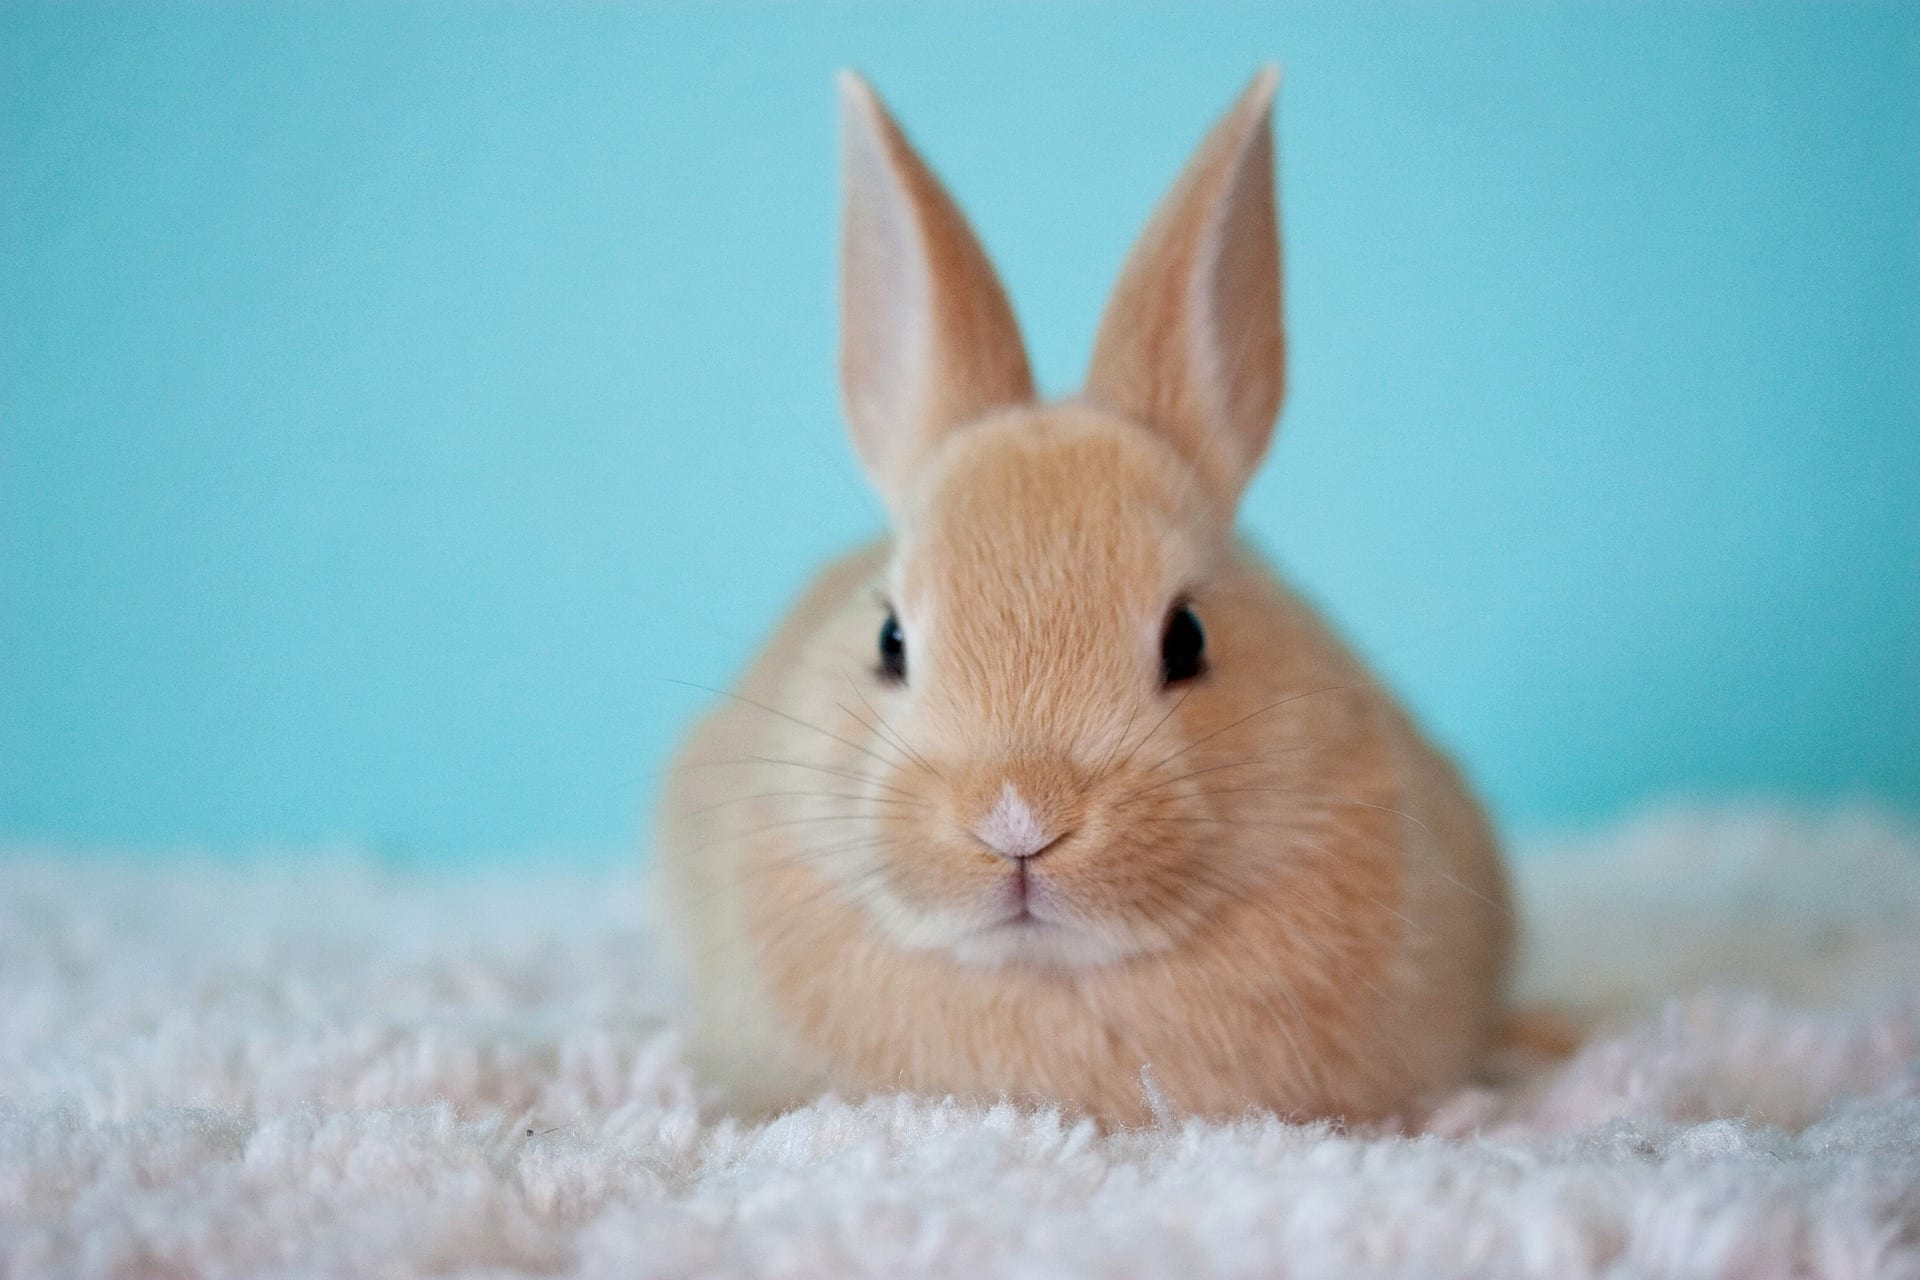 California's Cruelty-Free Cosmetics Act Gains Approval from State's Democratic Party